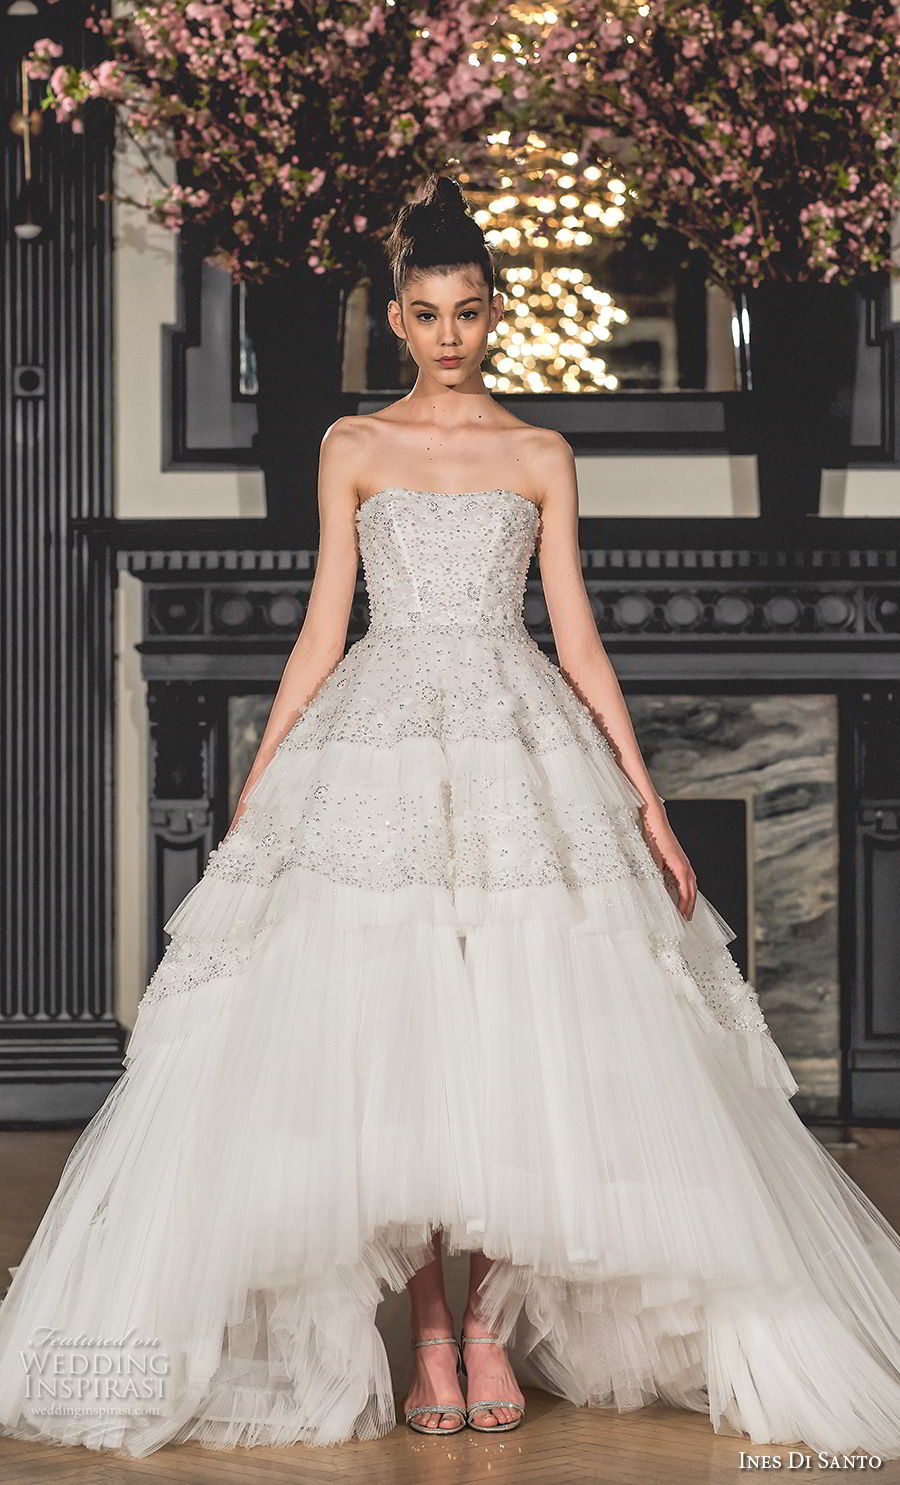 ines di santo spring 2019 bridal strapless semi sweetheart neckline heavily embellished bodice romantic a line wedding dress chapel train (11) mv